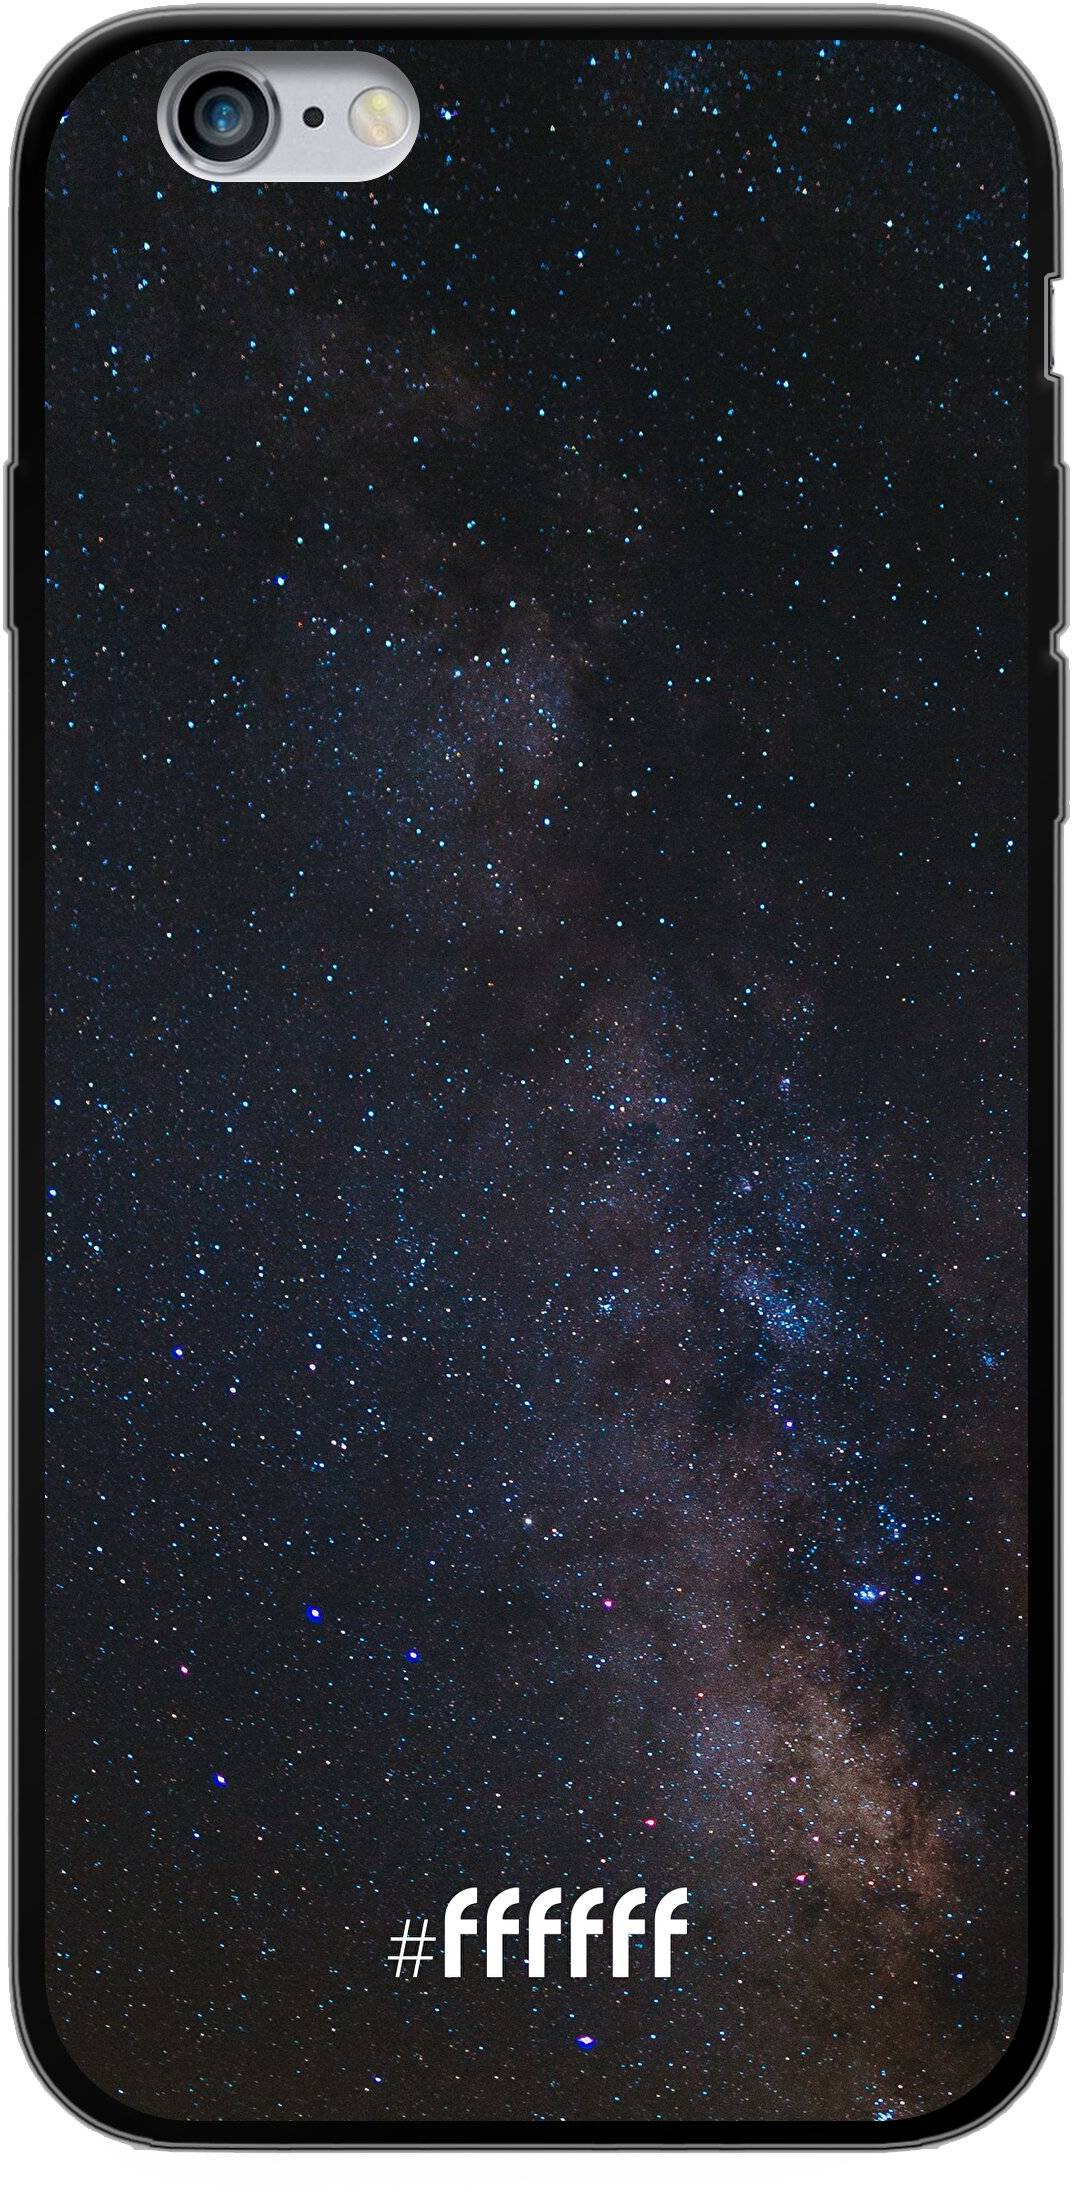 Dark Space iPhone 6s